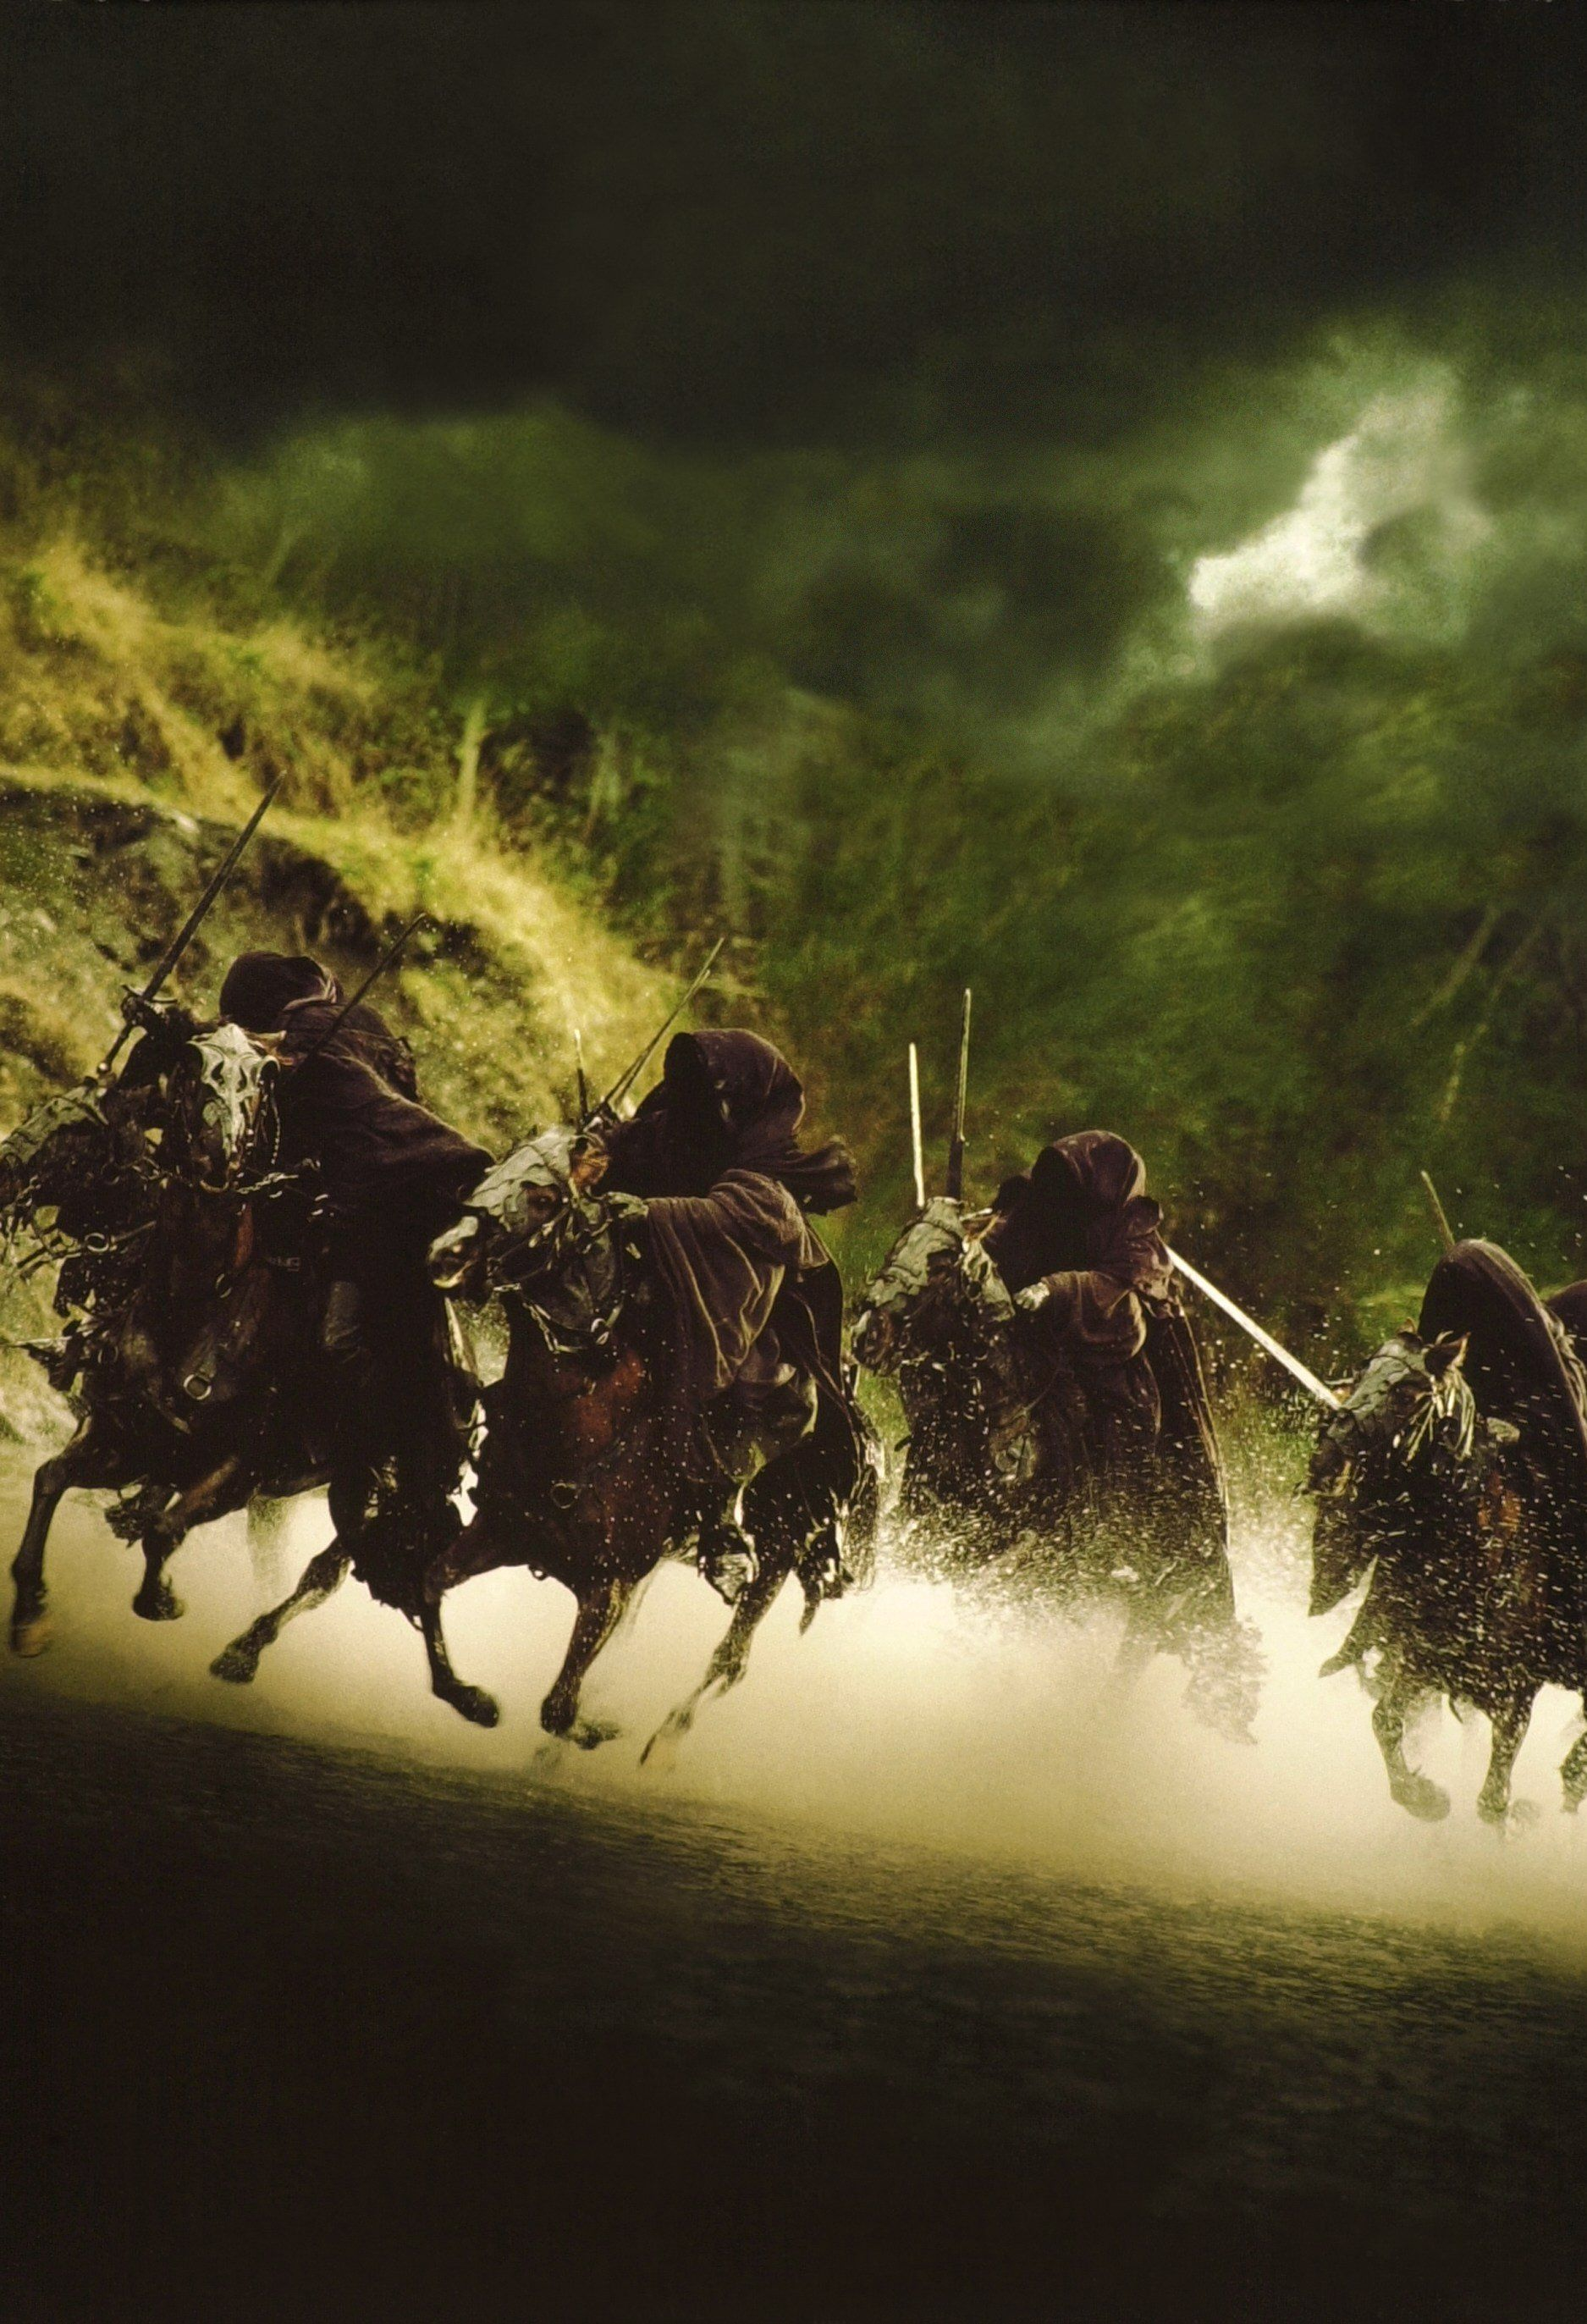 The Lord of the Rings: The Fellowship of the Ring - Movie Keyart